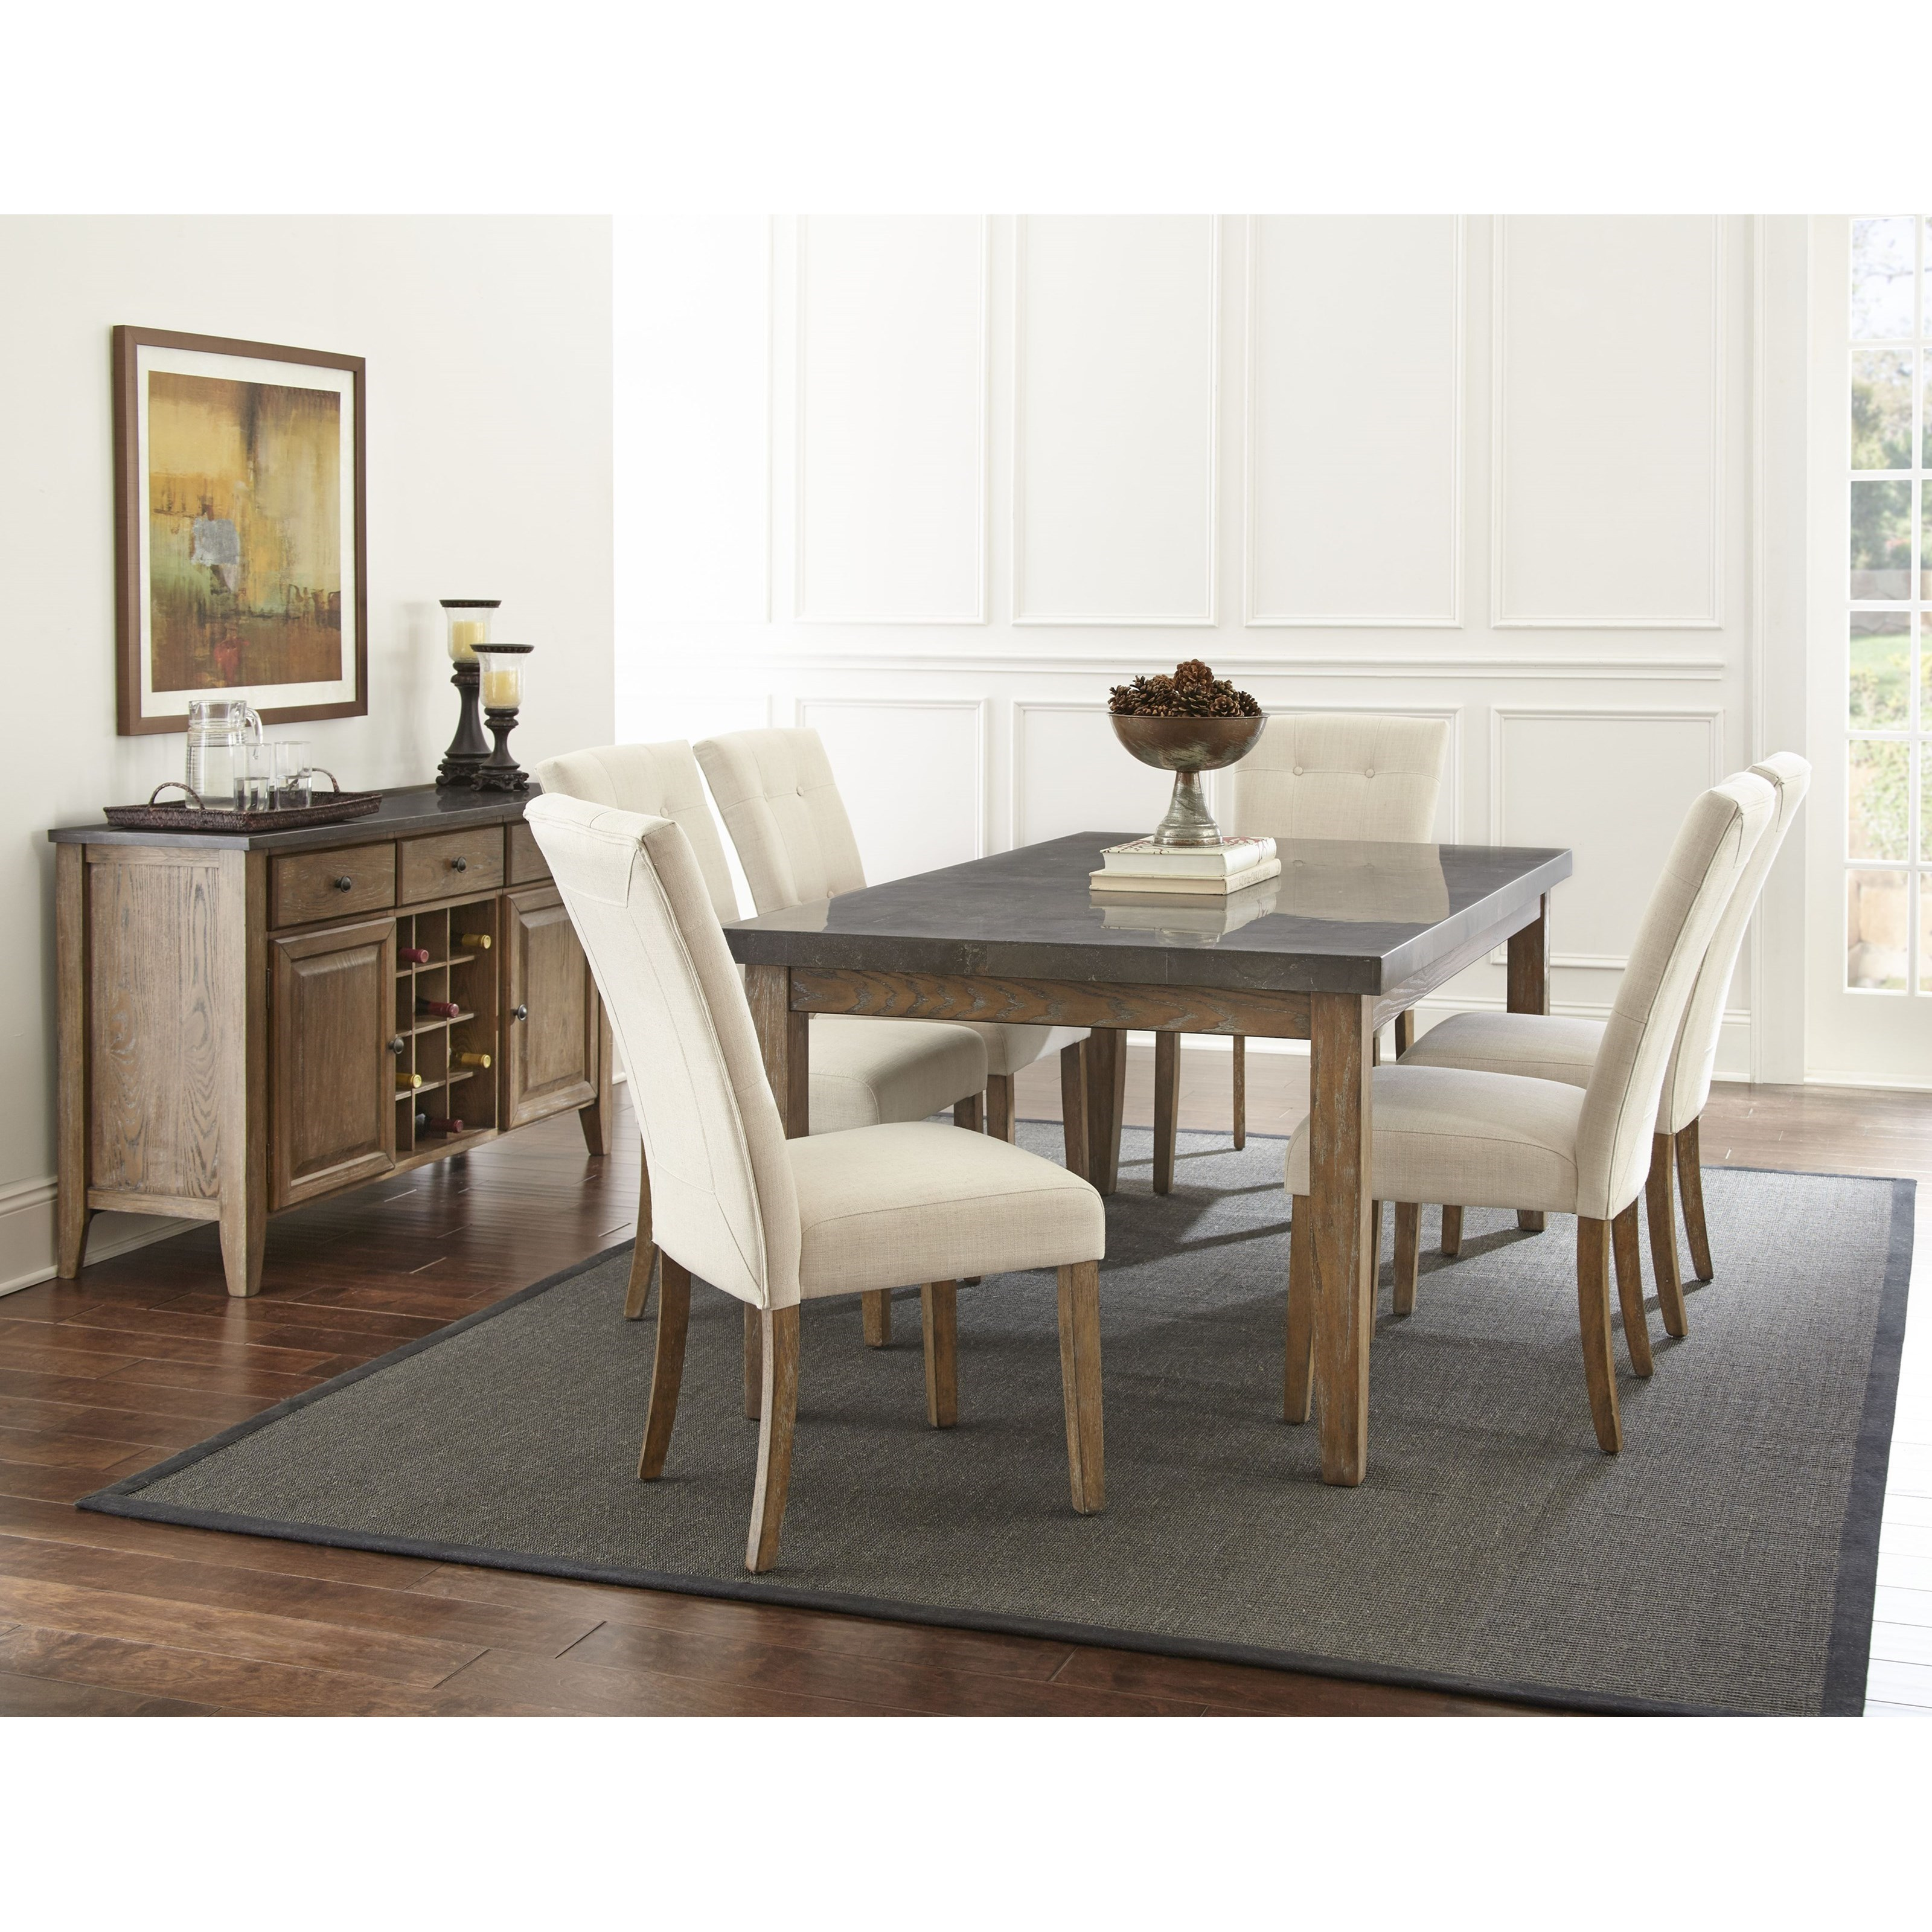 Debby Dining Room Group by Steve Silver at Northeast Factory Direct